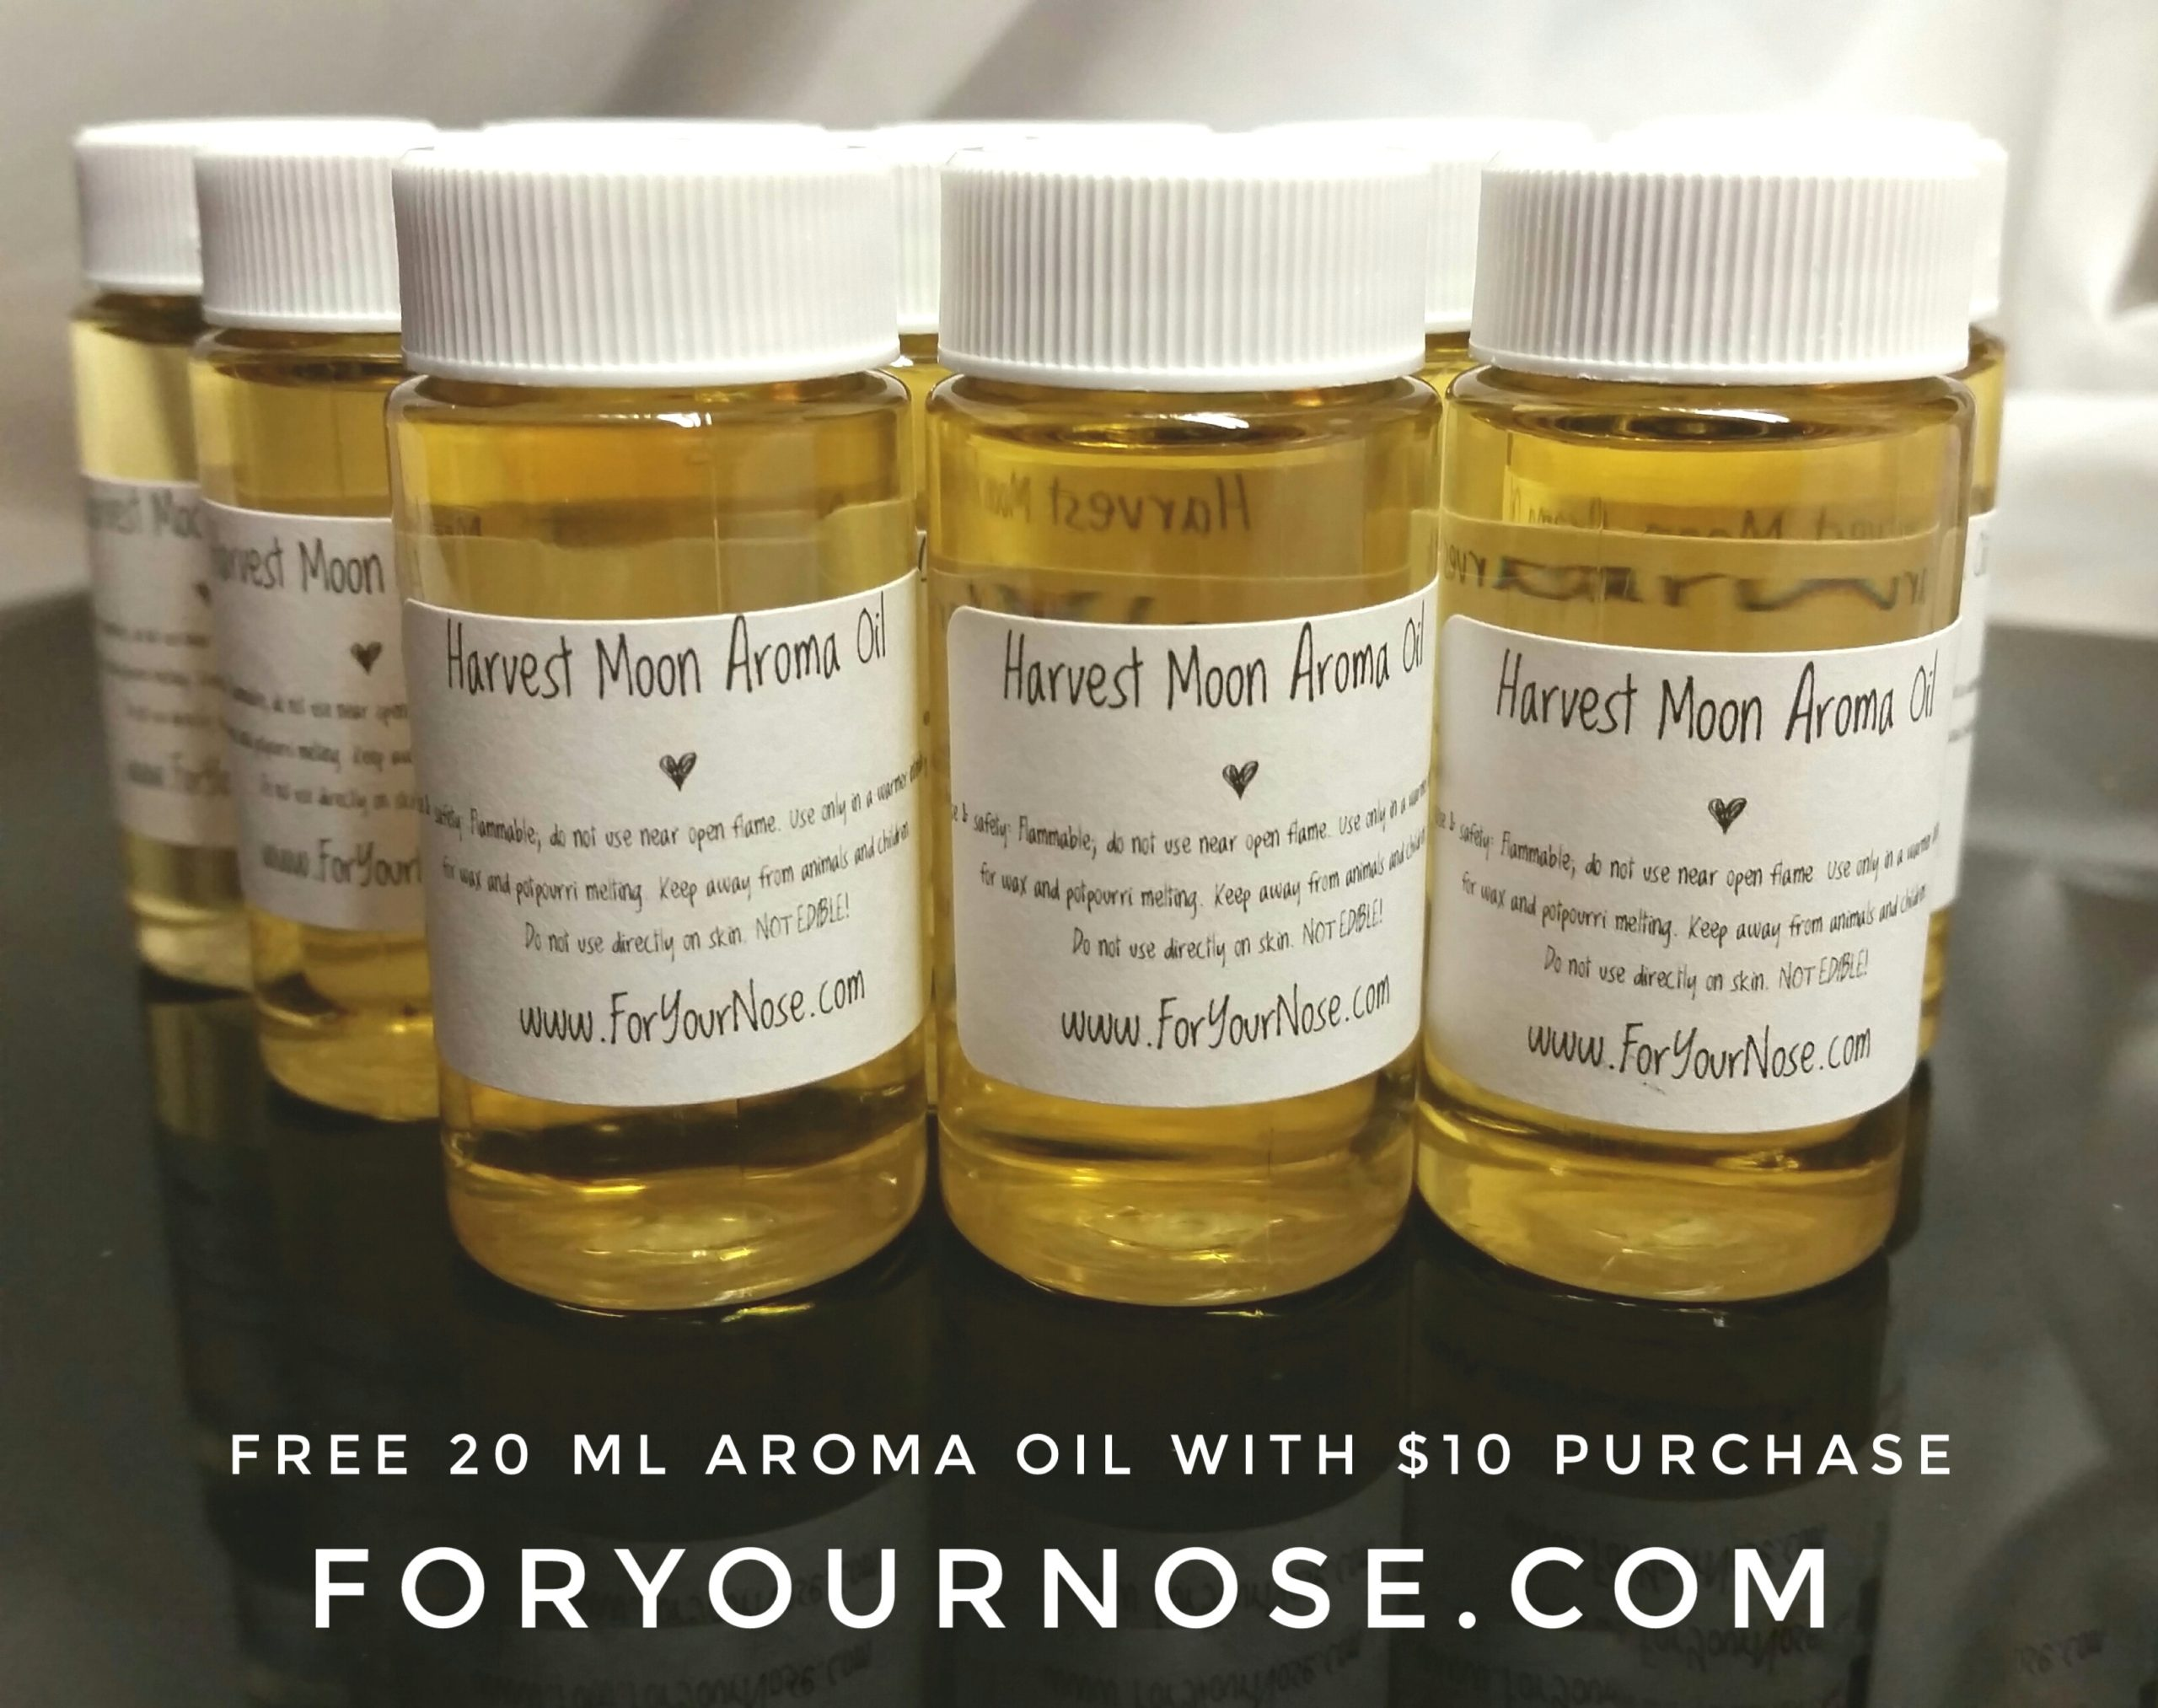 free aroma oil with $10 purchase